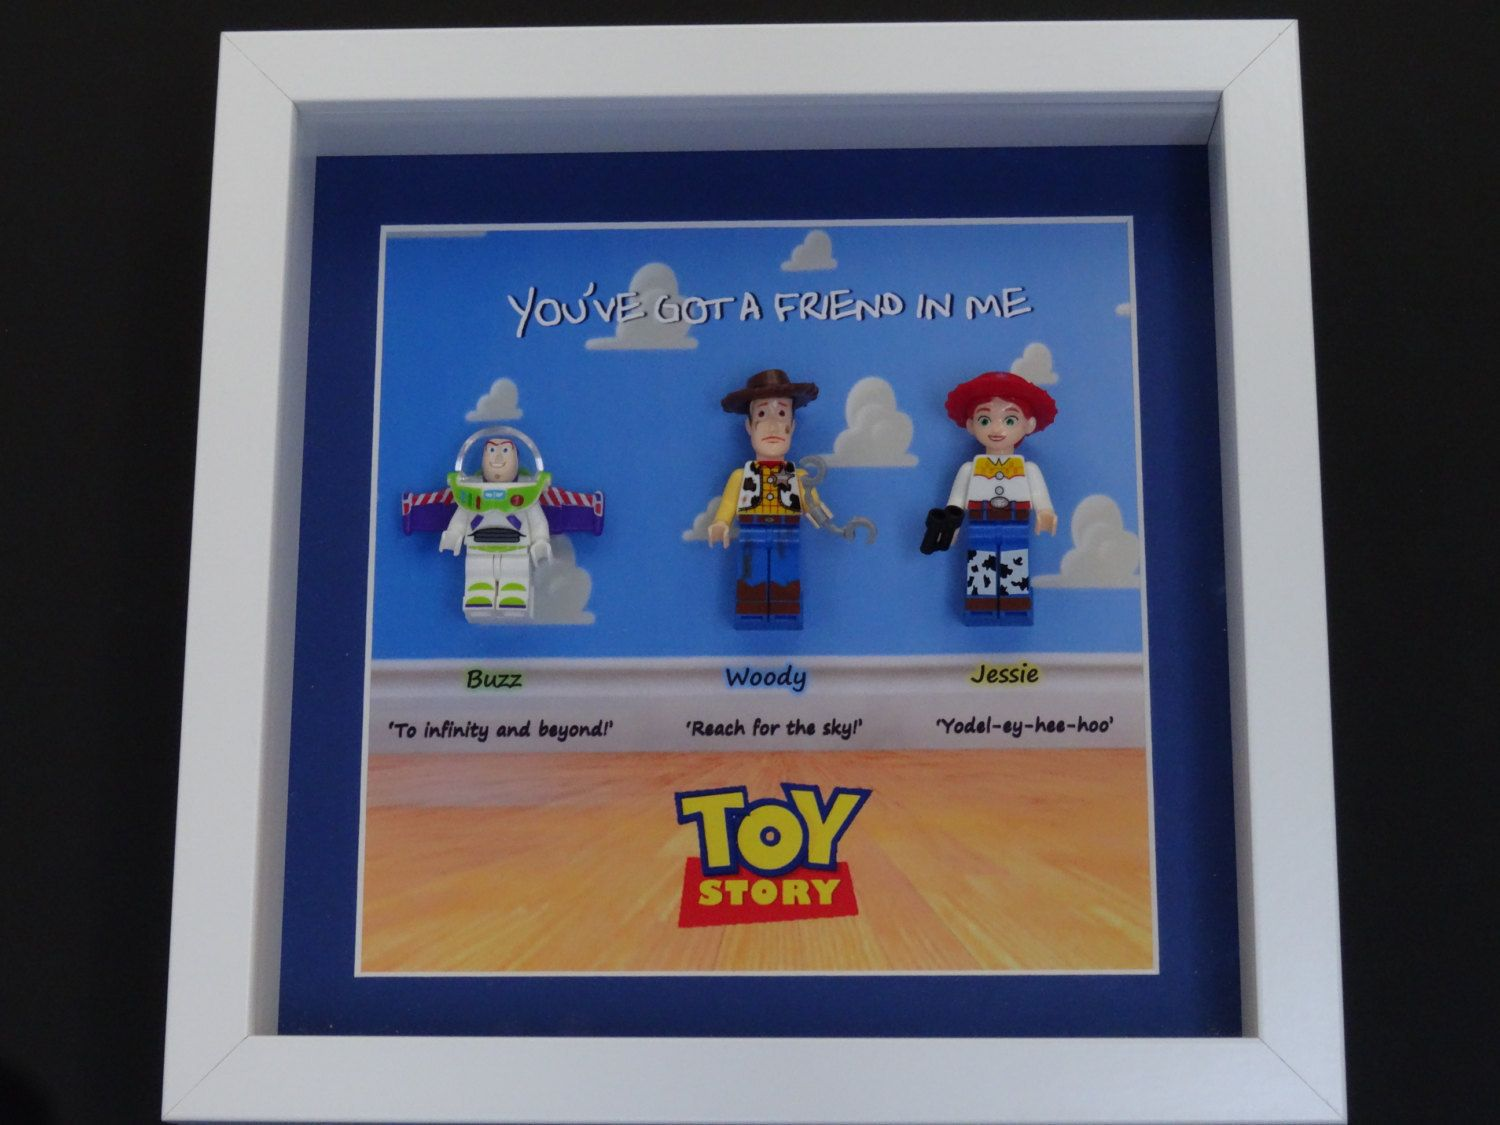 TOY STORY Minifigure box frame, wall art - Lego Inspired by ...